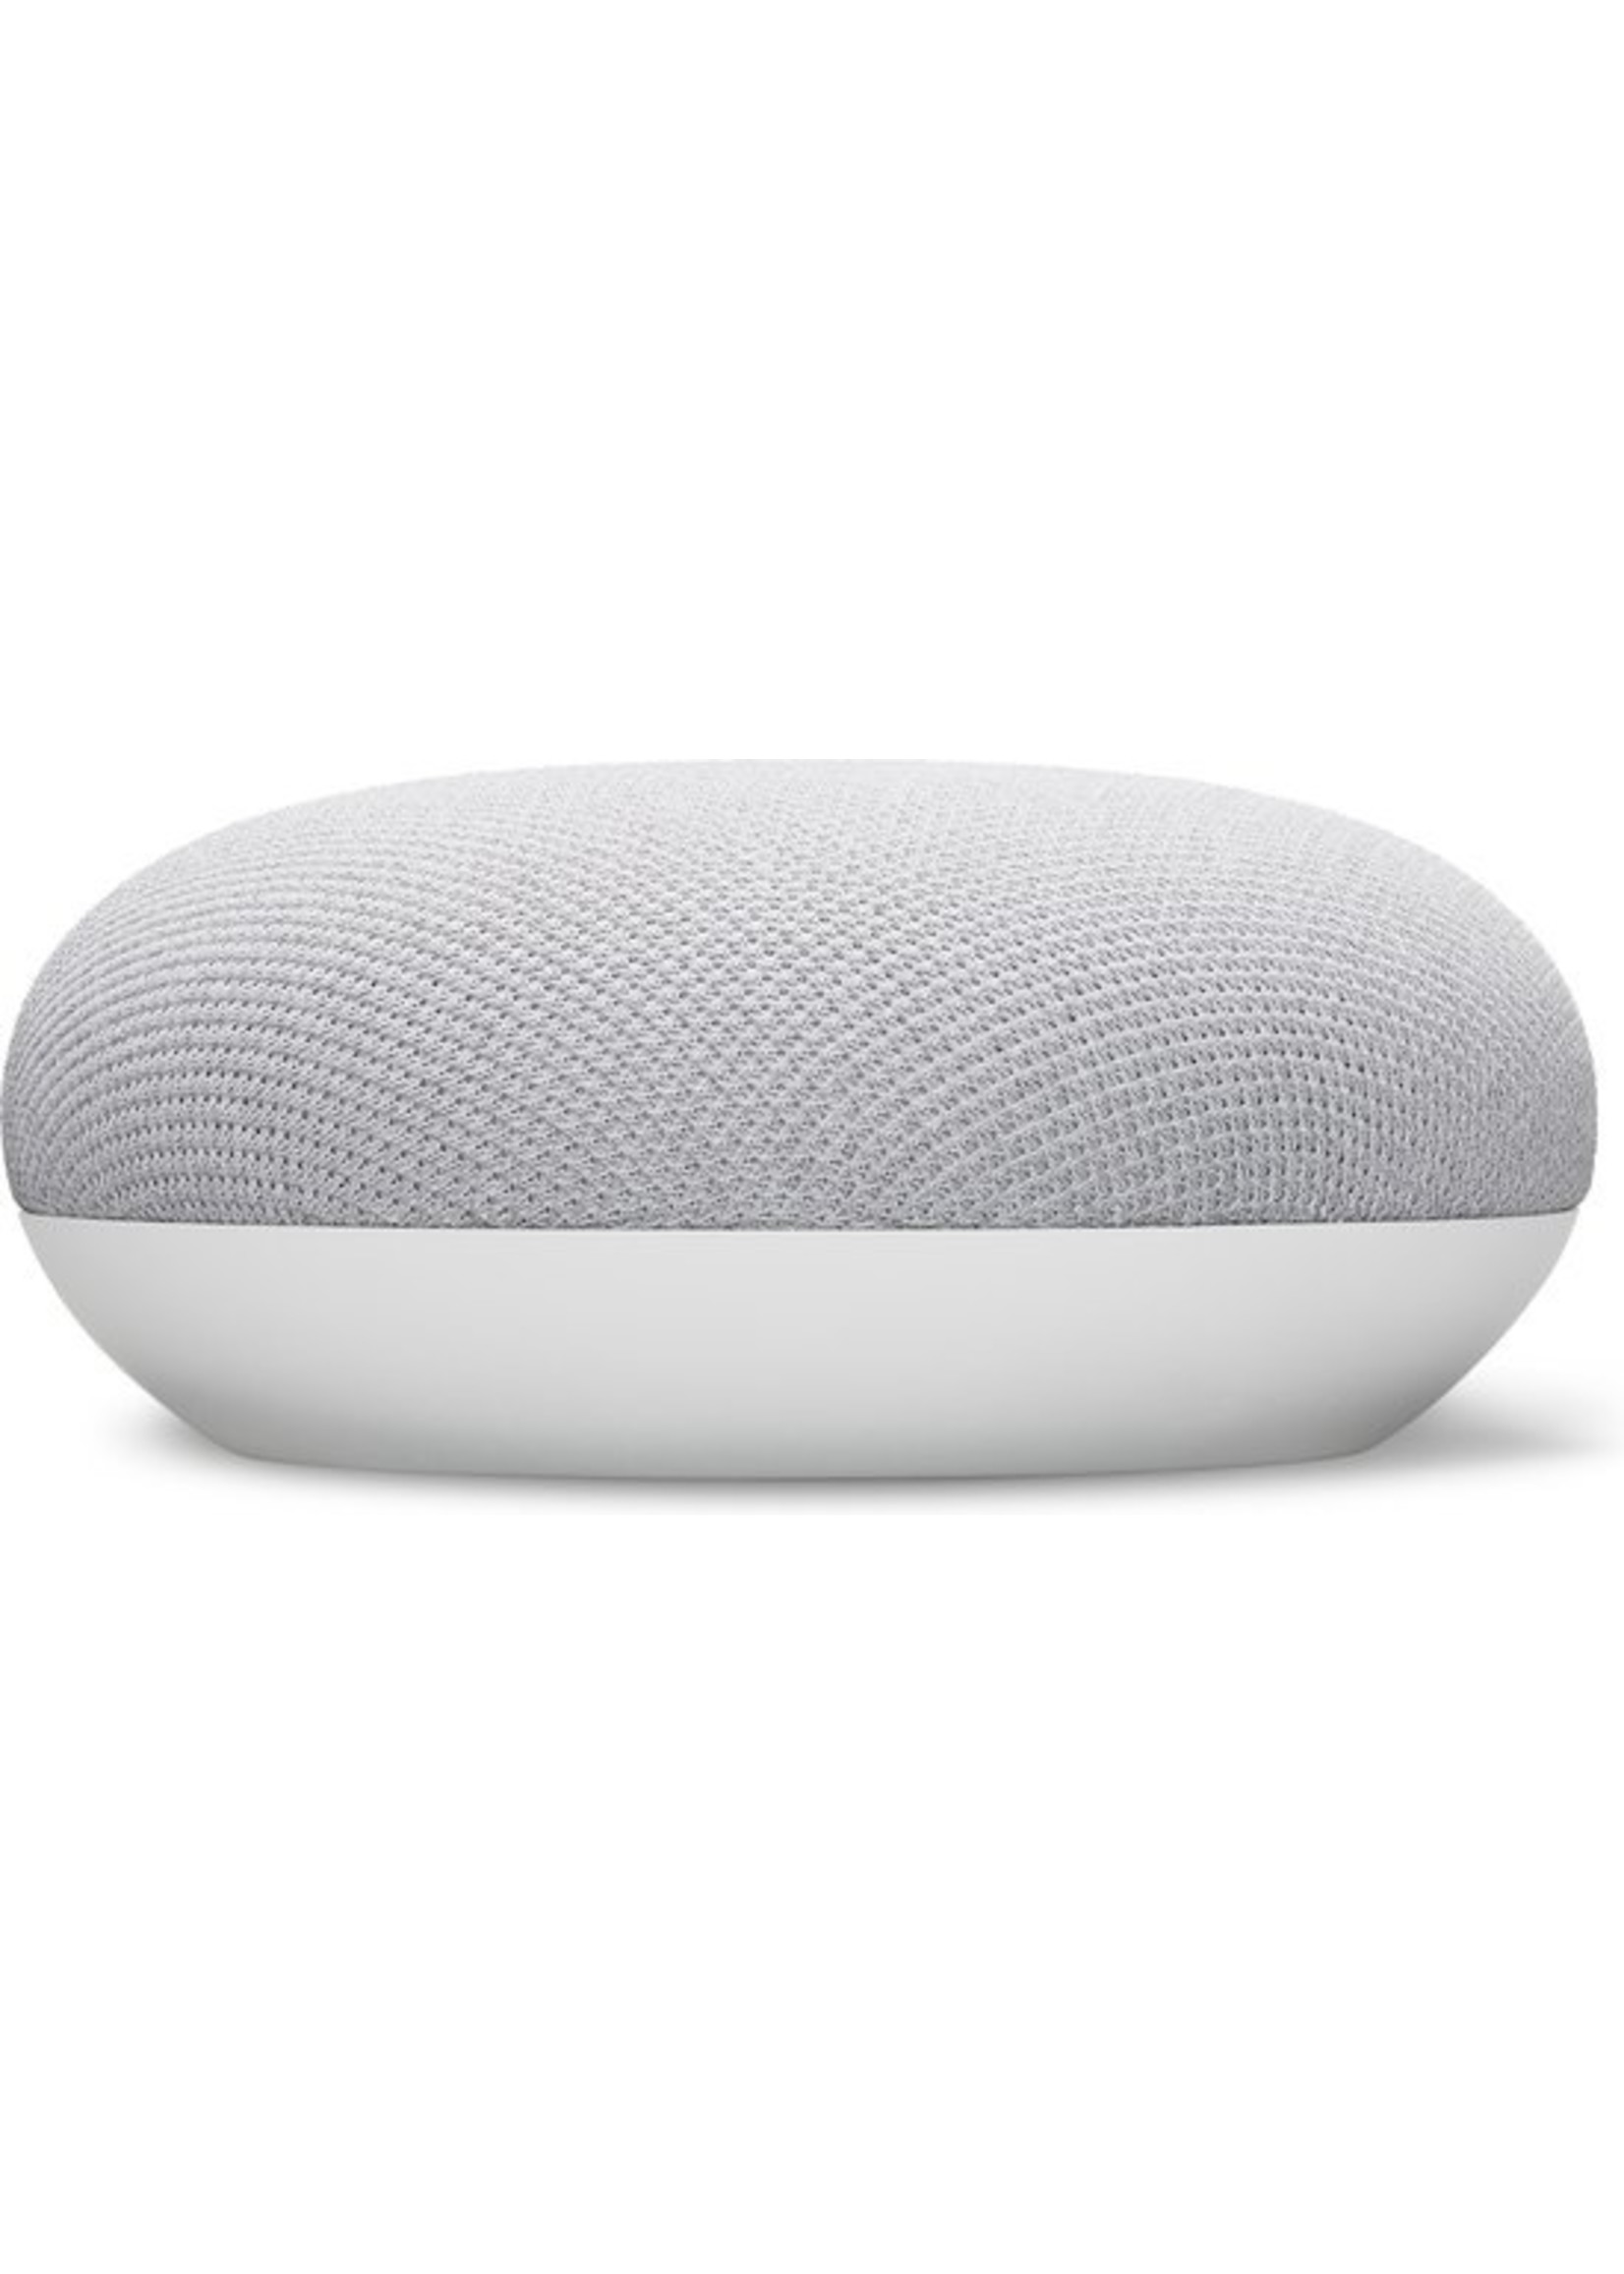 Google Google Nest Mini Smart Speaker Nederlandstalig Grijs